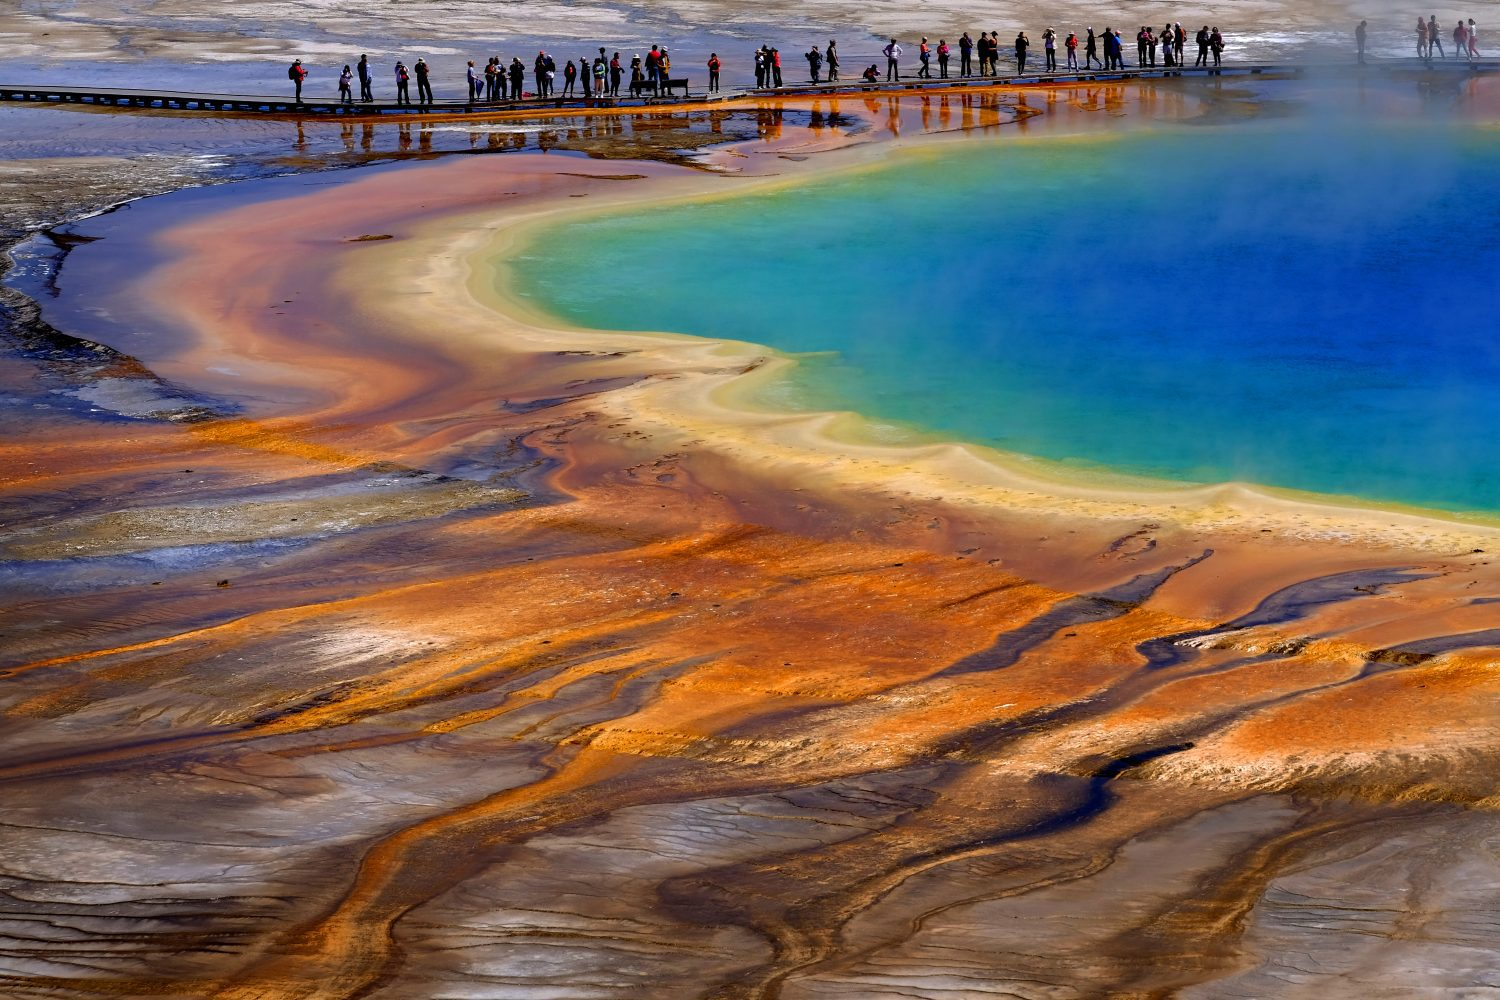 Grand Prismatic Spring Yellowstone National Park Tourists Viewing Spectacular Scene